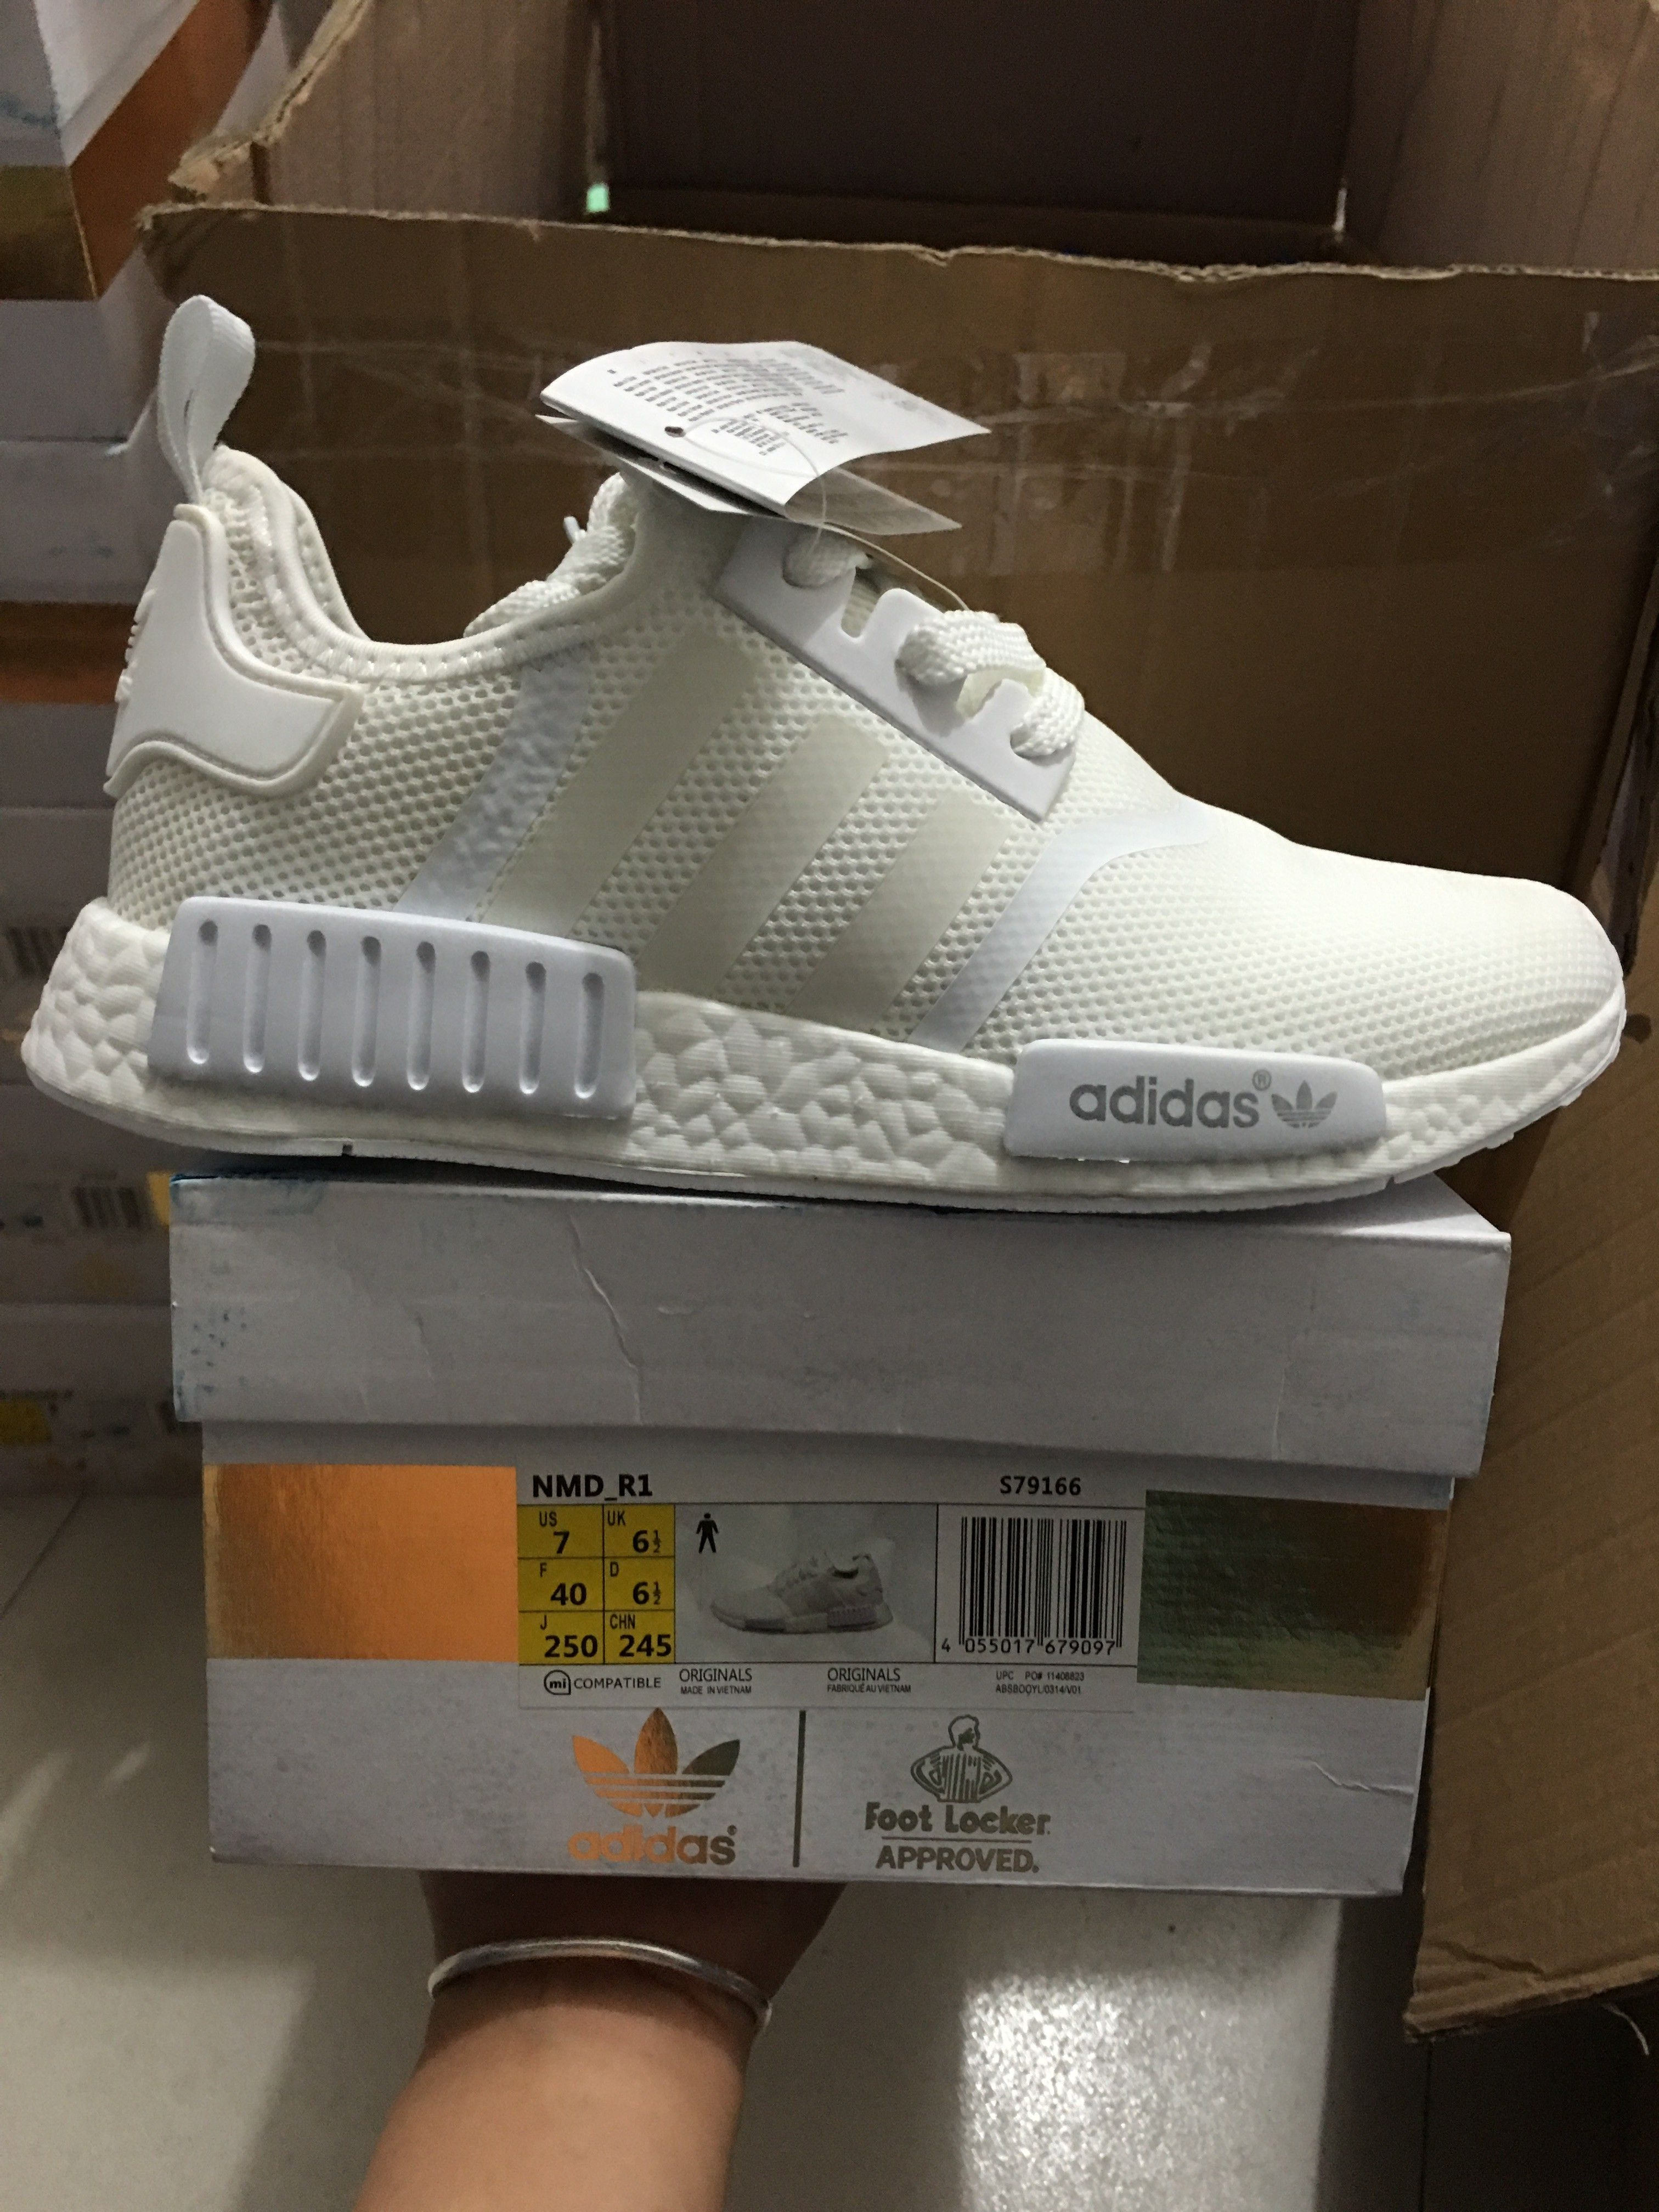 Prix Chaussures Blanche Nmd Meilleur Femme Adidas All 35Aq4LcRjS